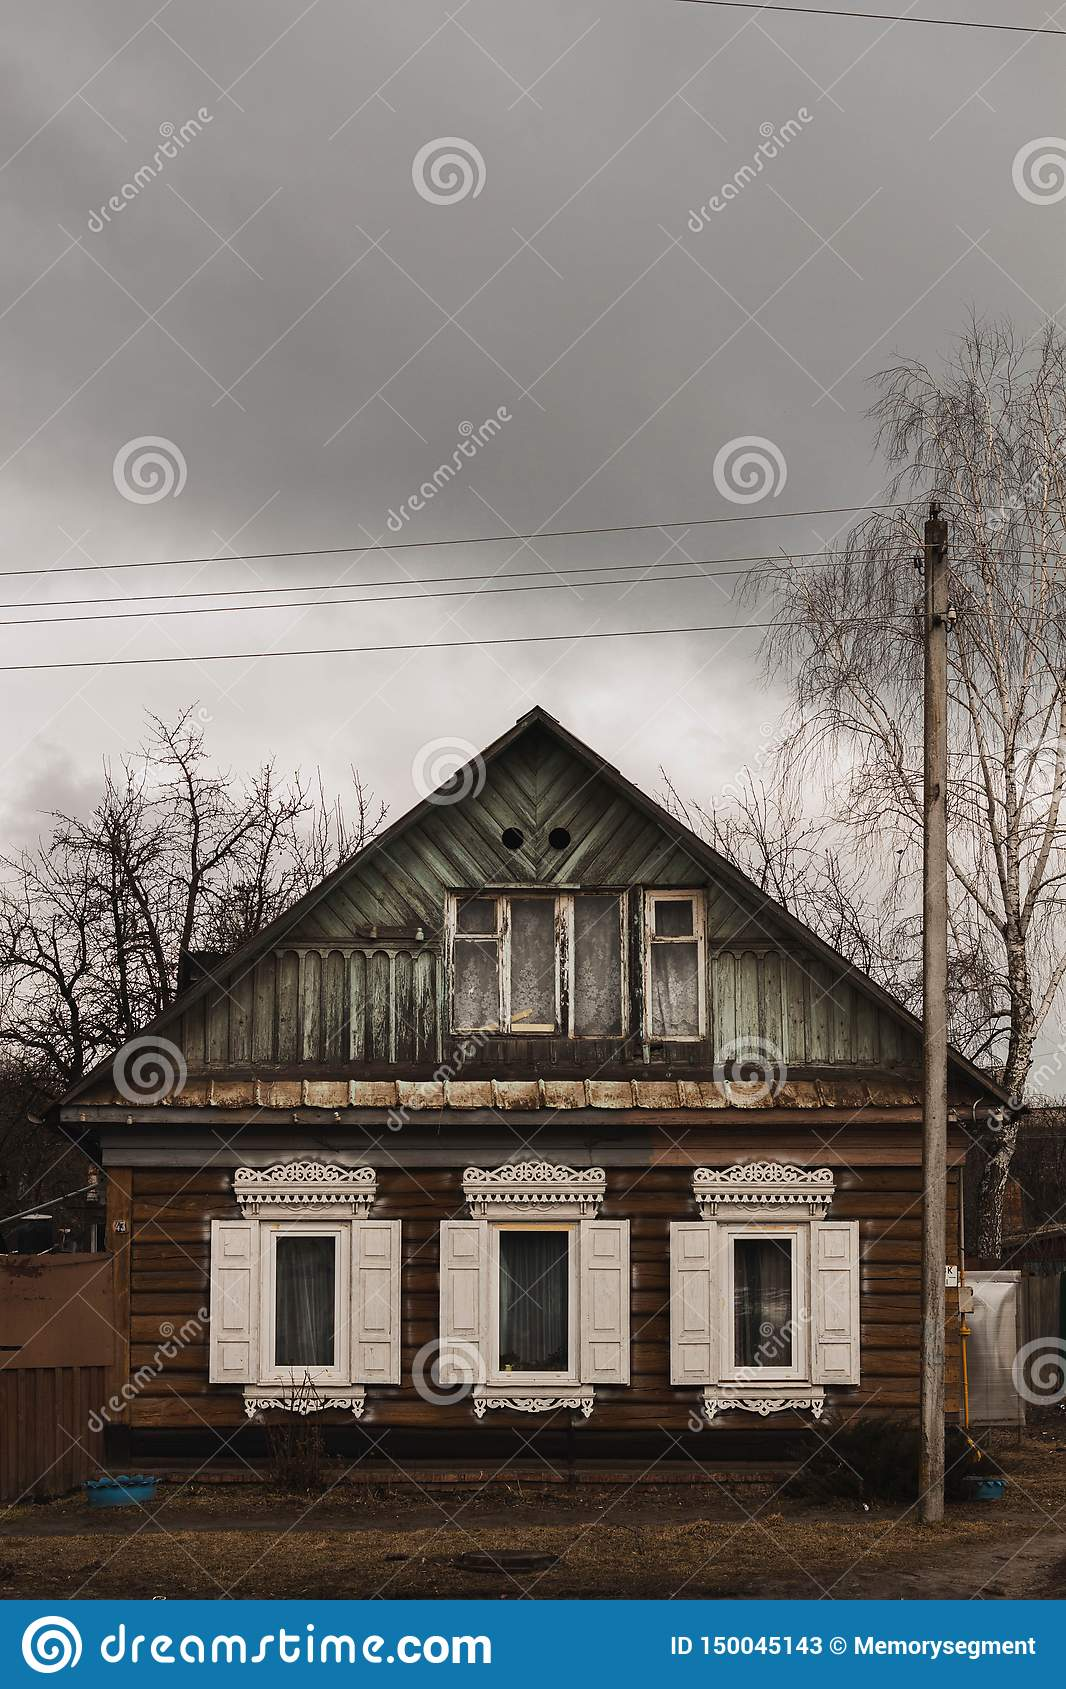 Old wooden house with white shutters in cloudy weather